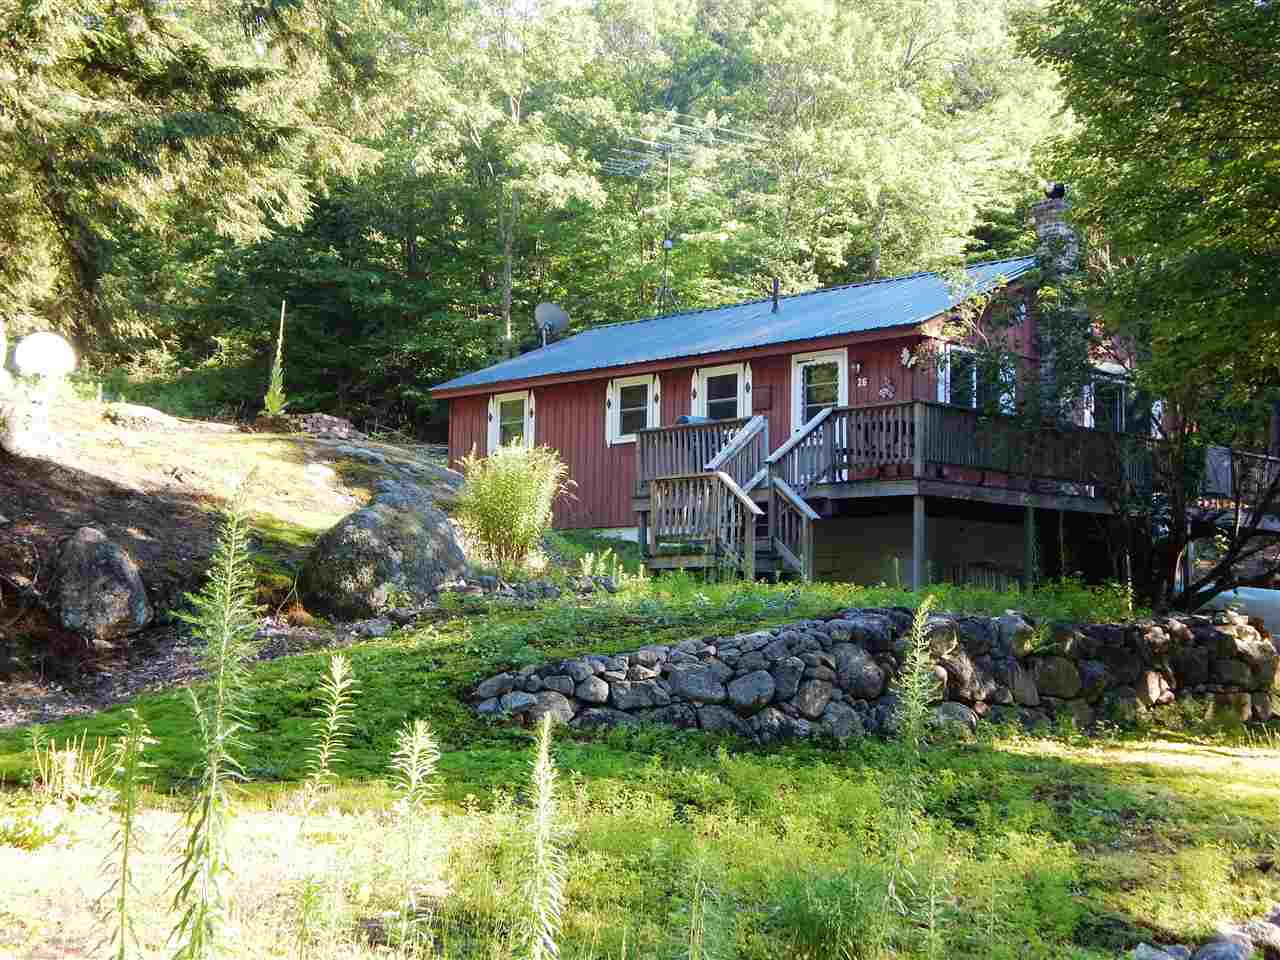 Cottage/Camp,Ranch, Single Family - Meredith, NH (photo 1)